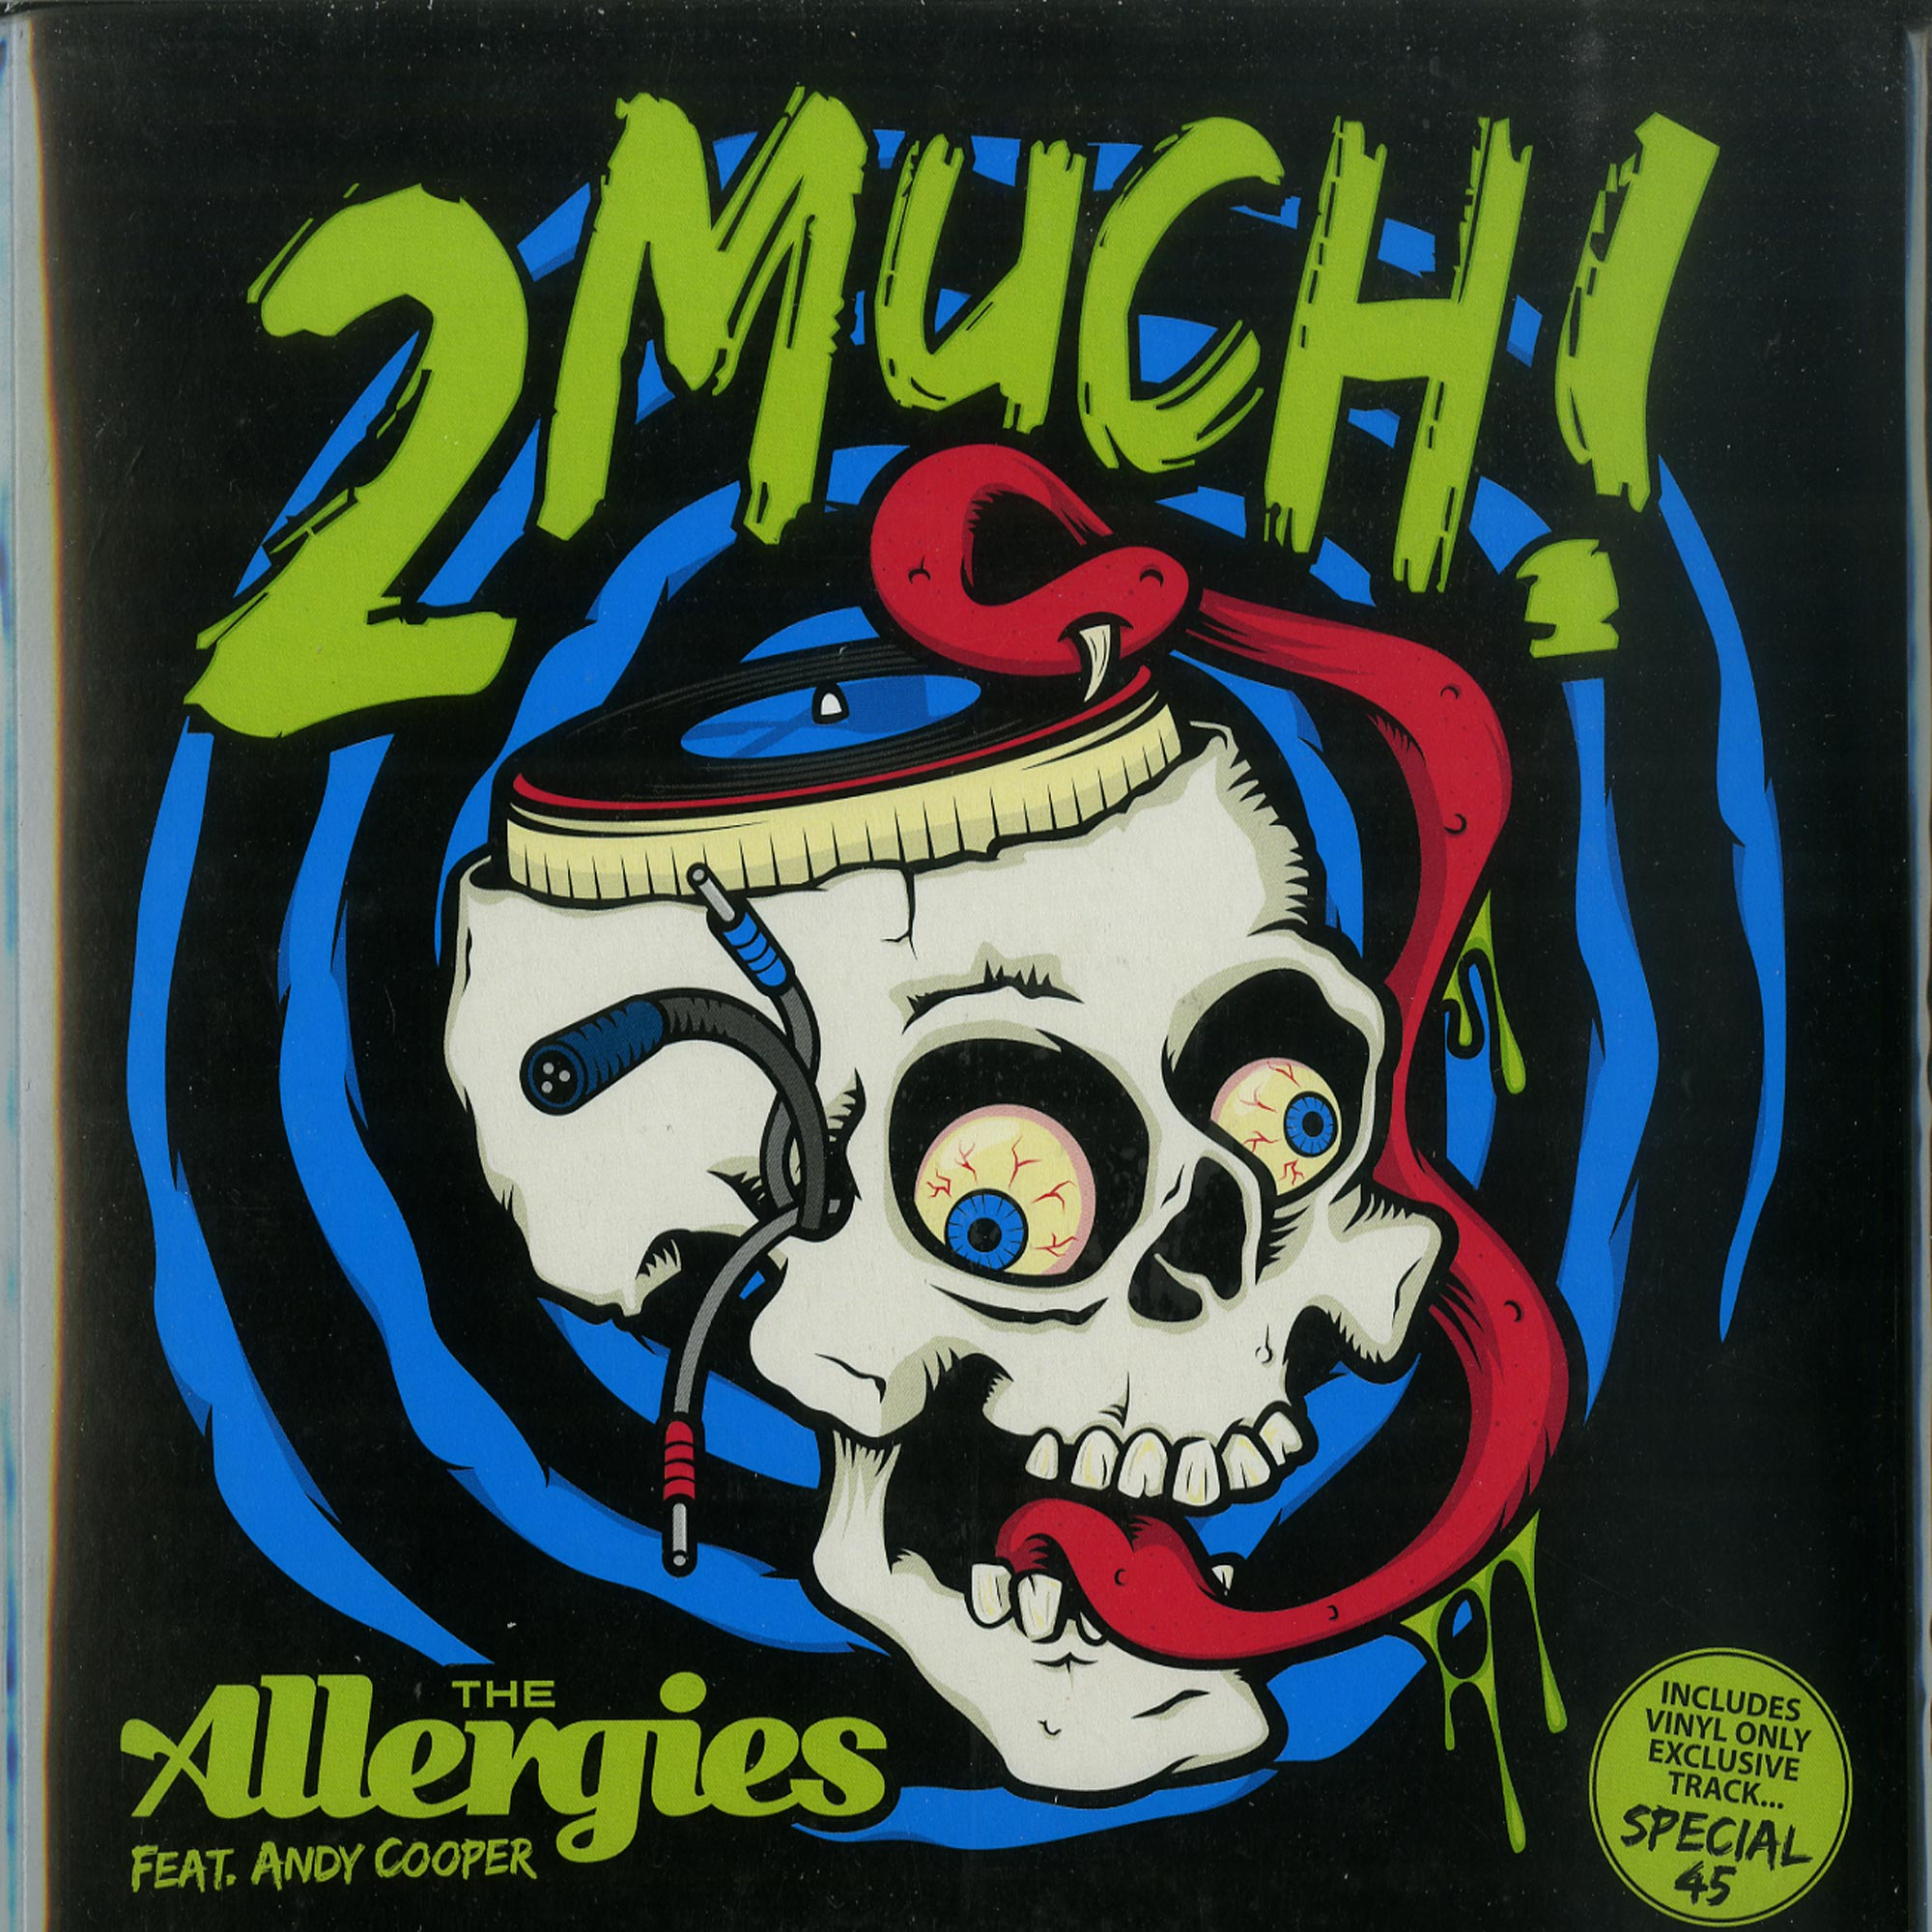 The Allergies - 2 MUCH! / SPECIAL 45